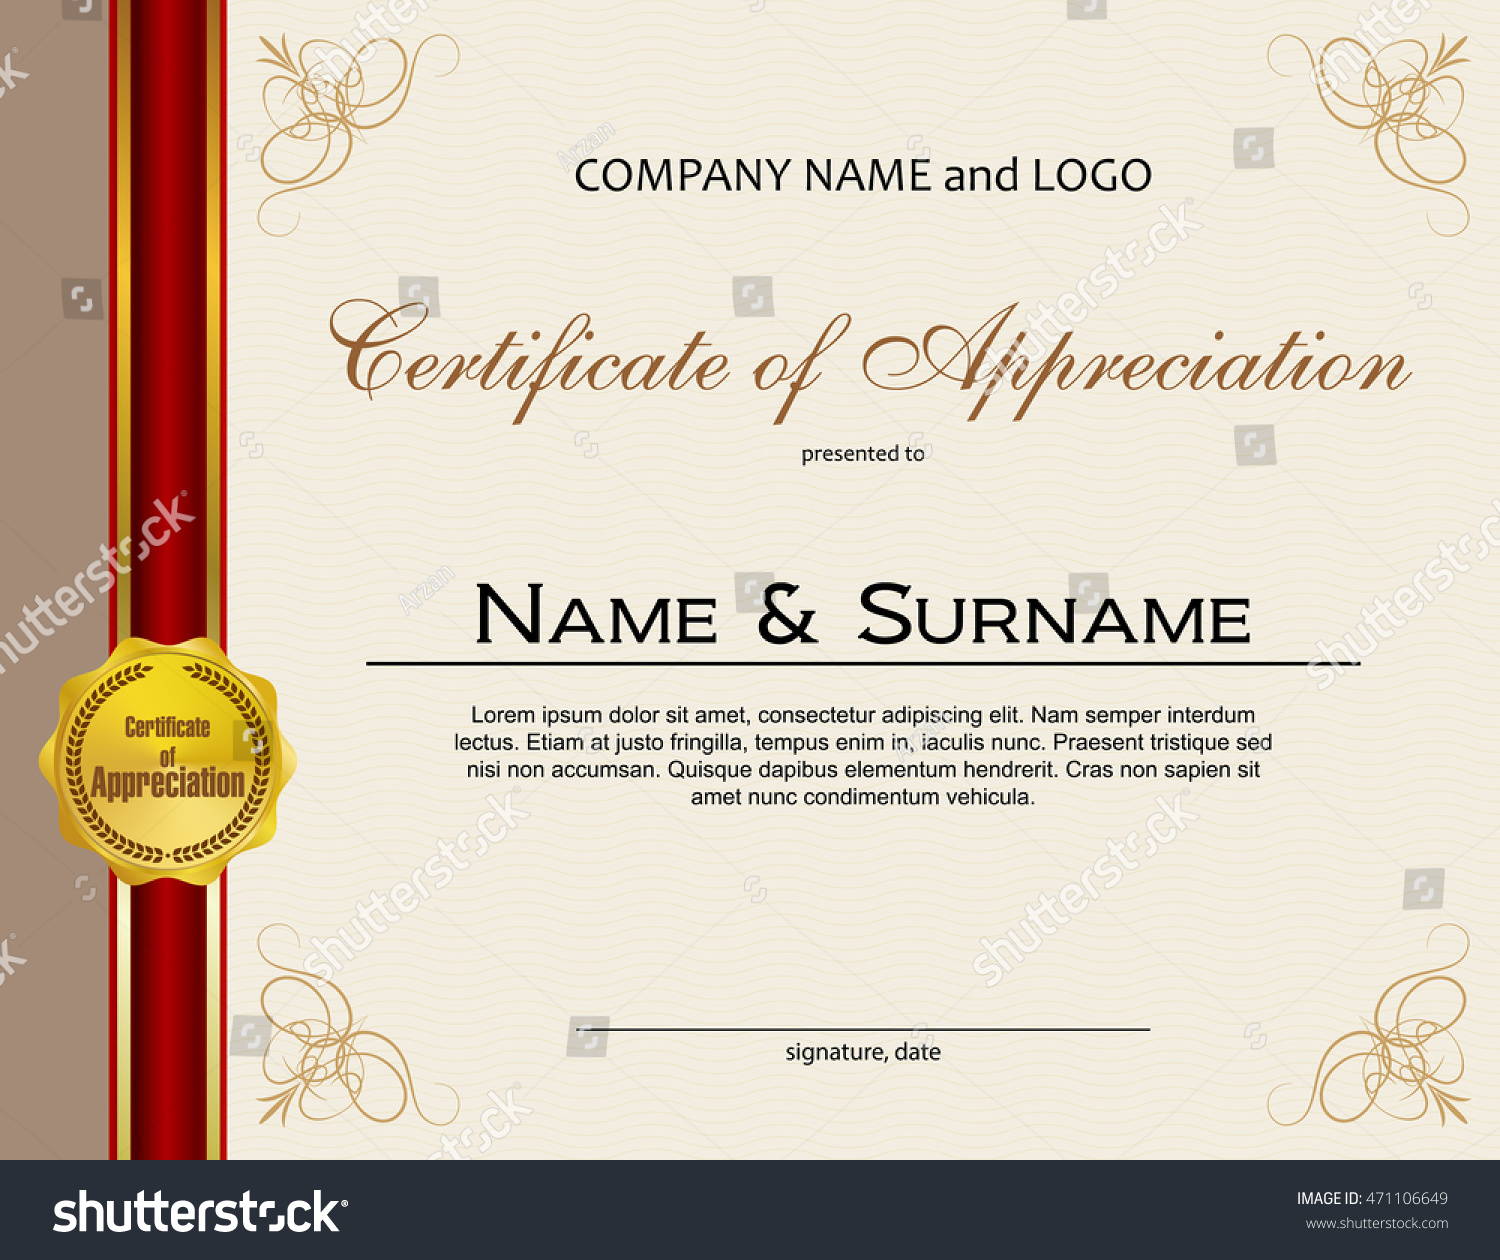 Certificate appreciation medal ribbon stock vector 471106649 certificate of appreciation with medal and ribbon yadclub Image collections